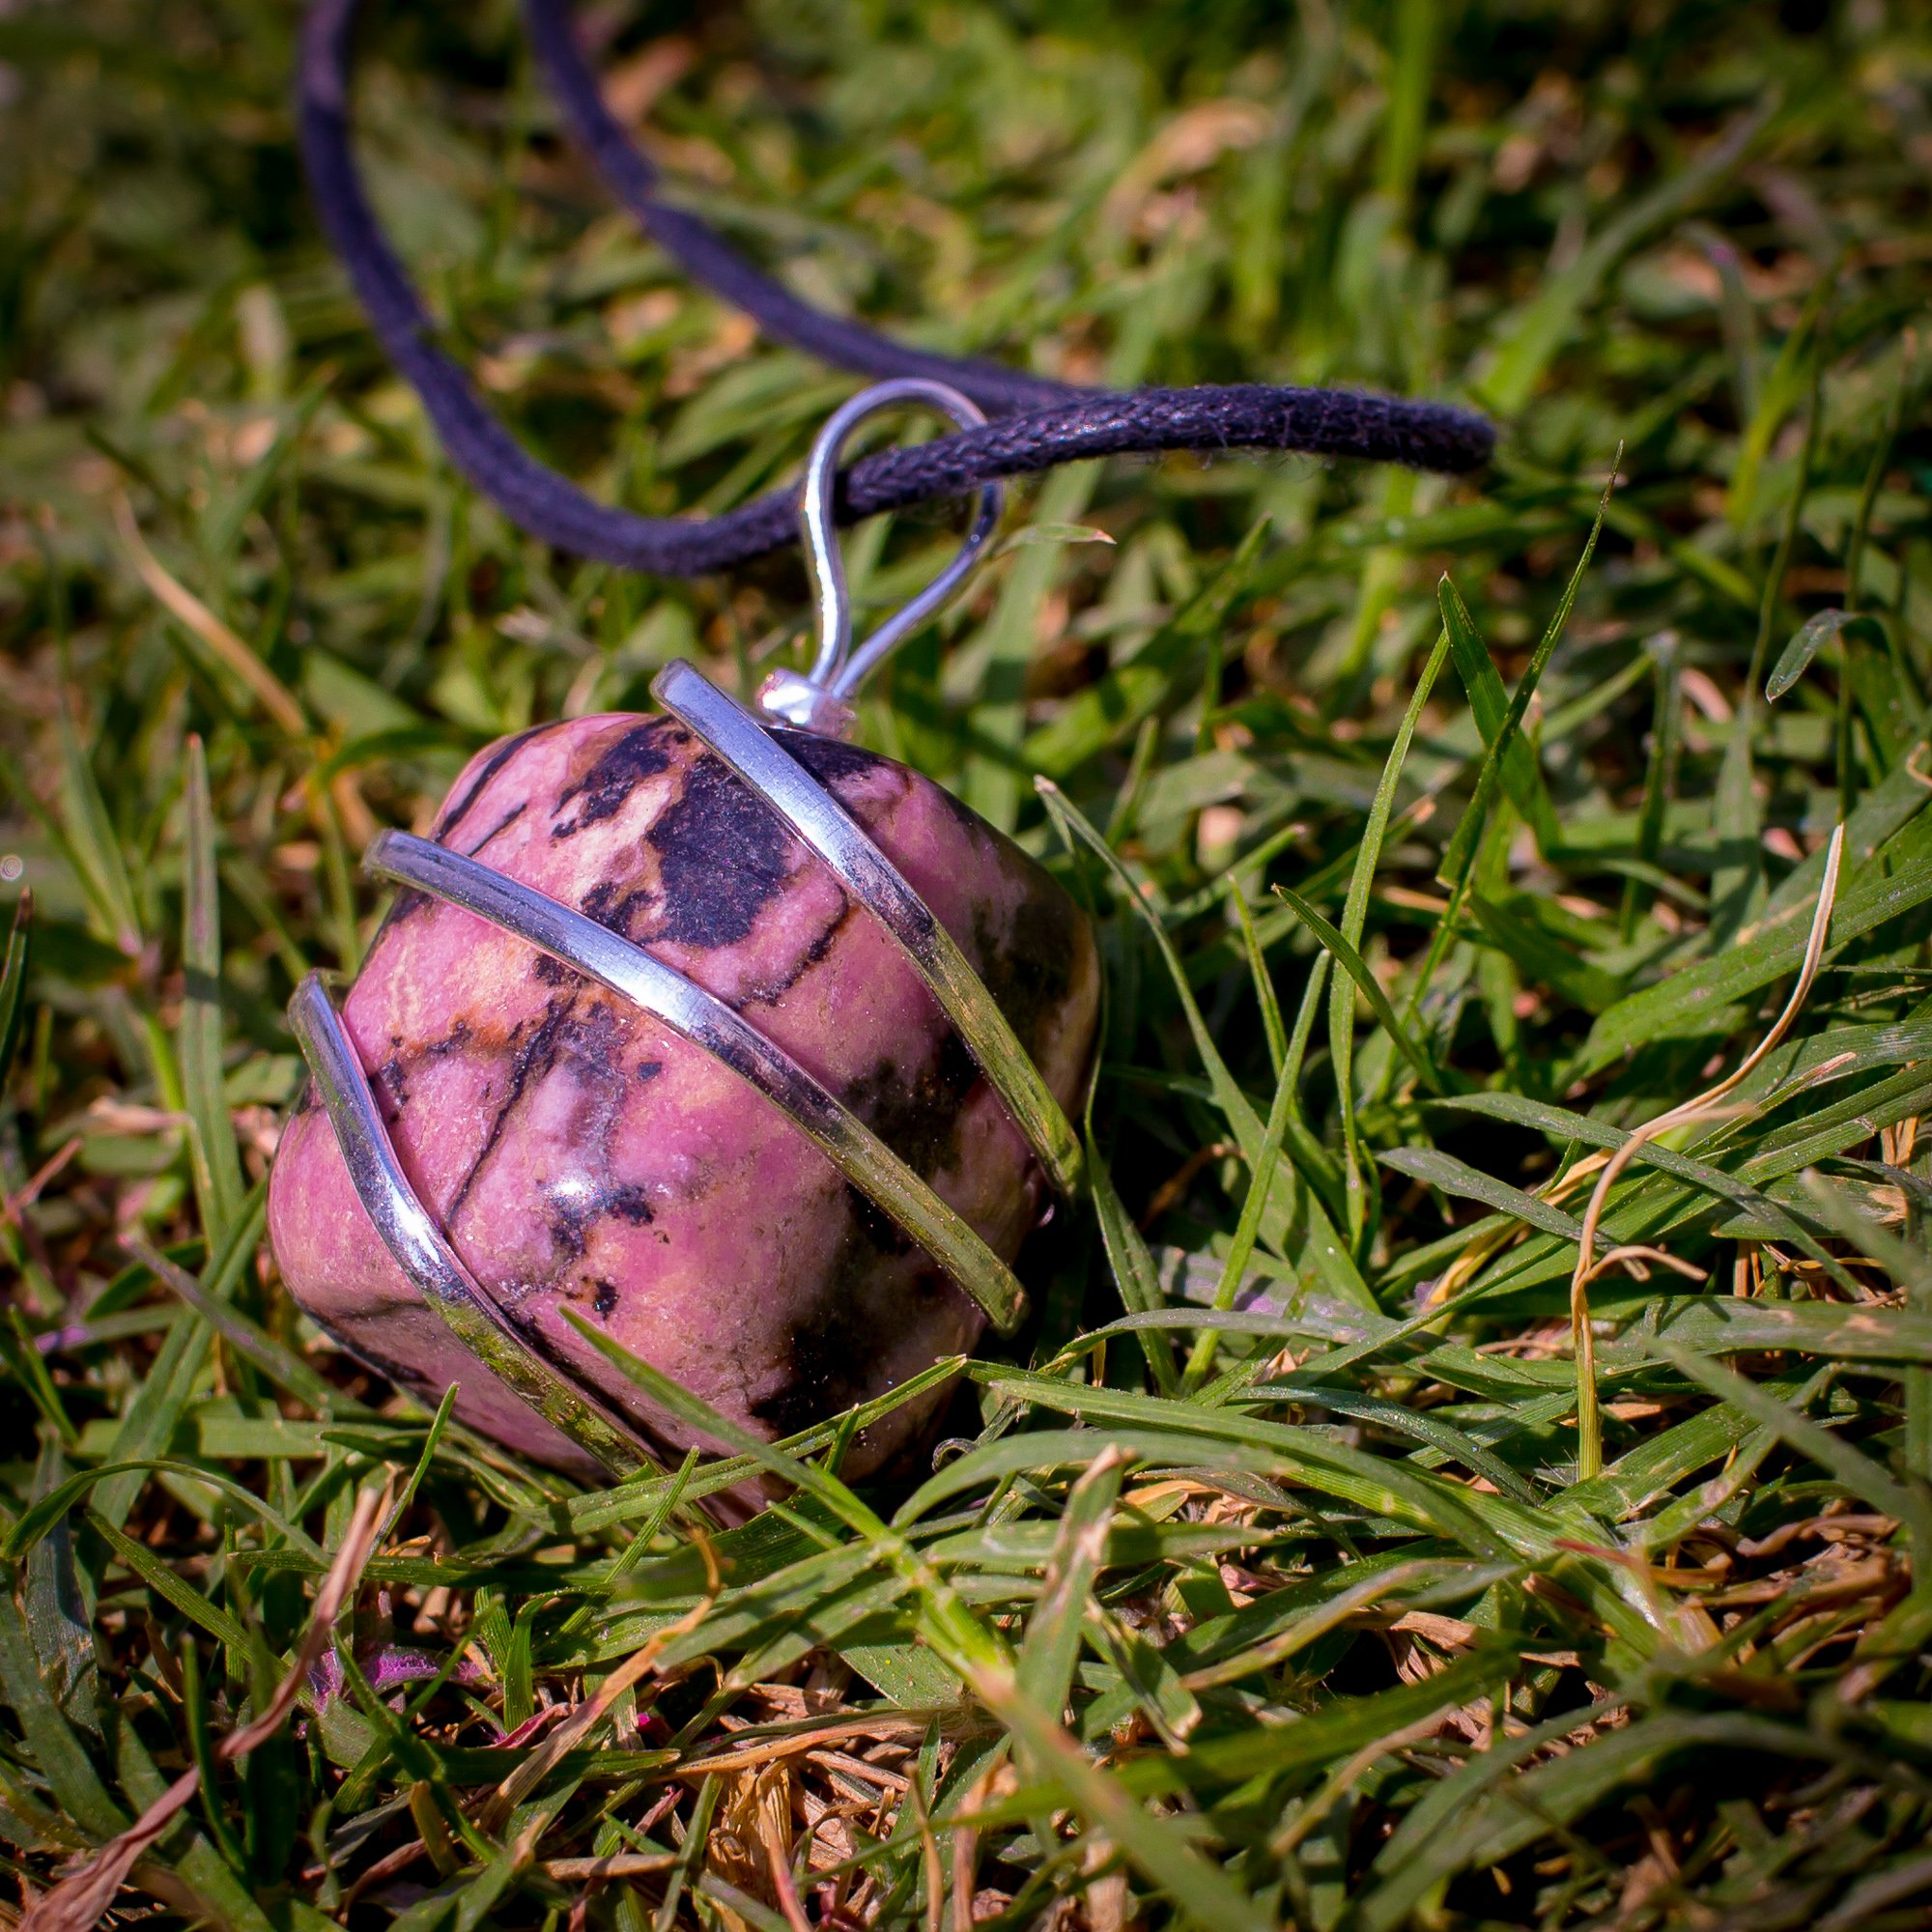 Rhodonite Crystal Pendant Necklace – Compassion Forgiveness Release of Fear Emotional Healing Heartbreak Relationships - Authentic Stone on Adjustable Length Cord - Real Gemstone Chakra Healing Charm by Ayana Wellness (Image #5)